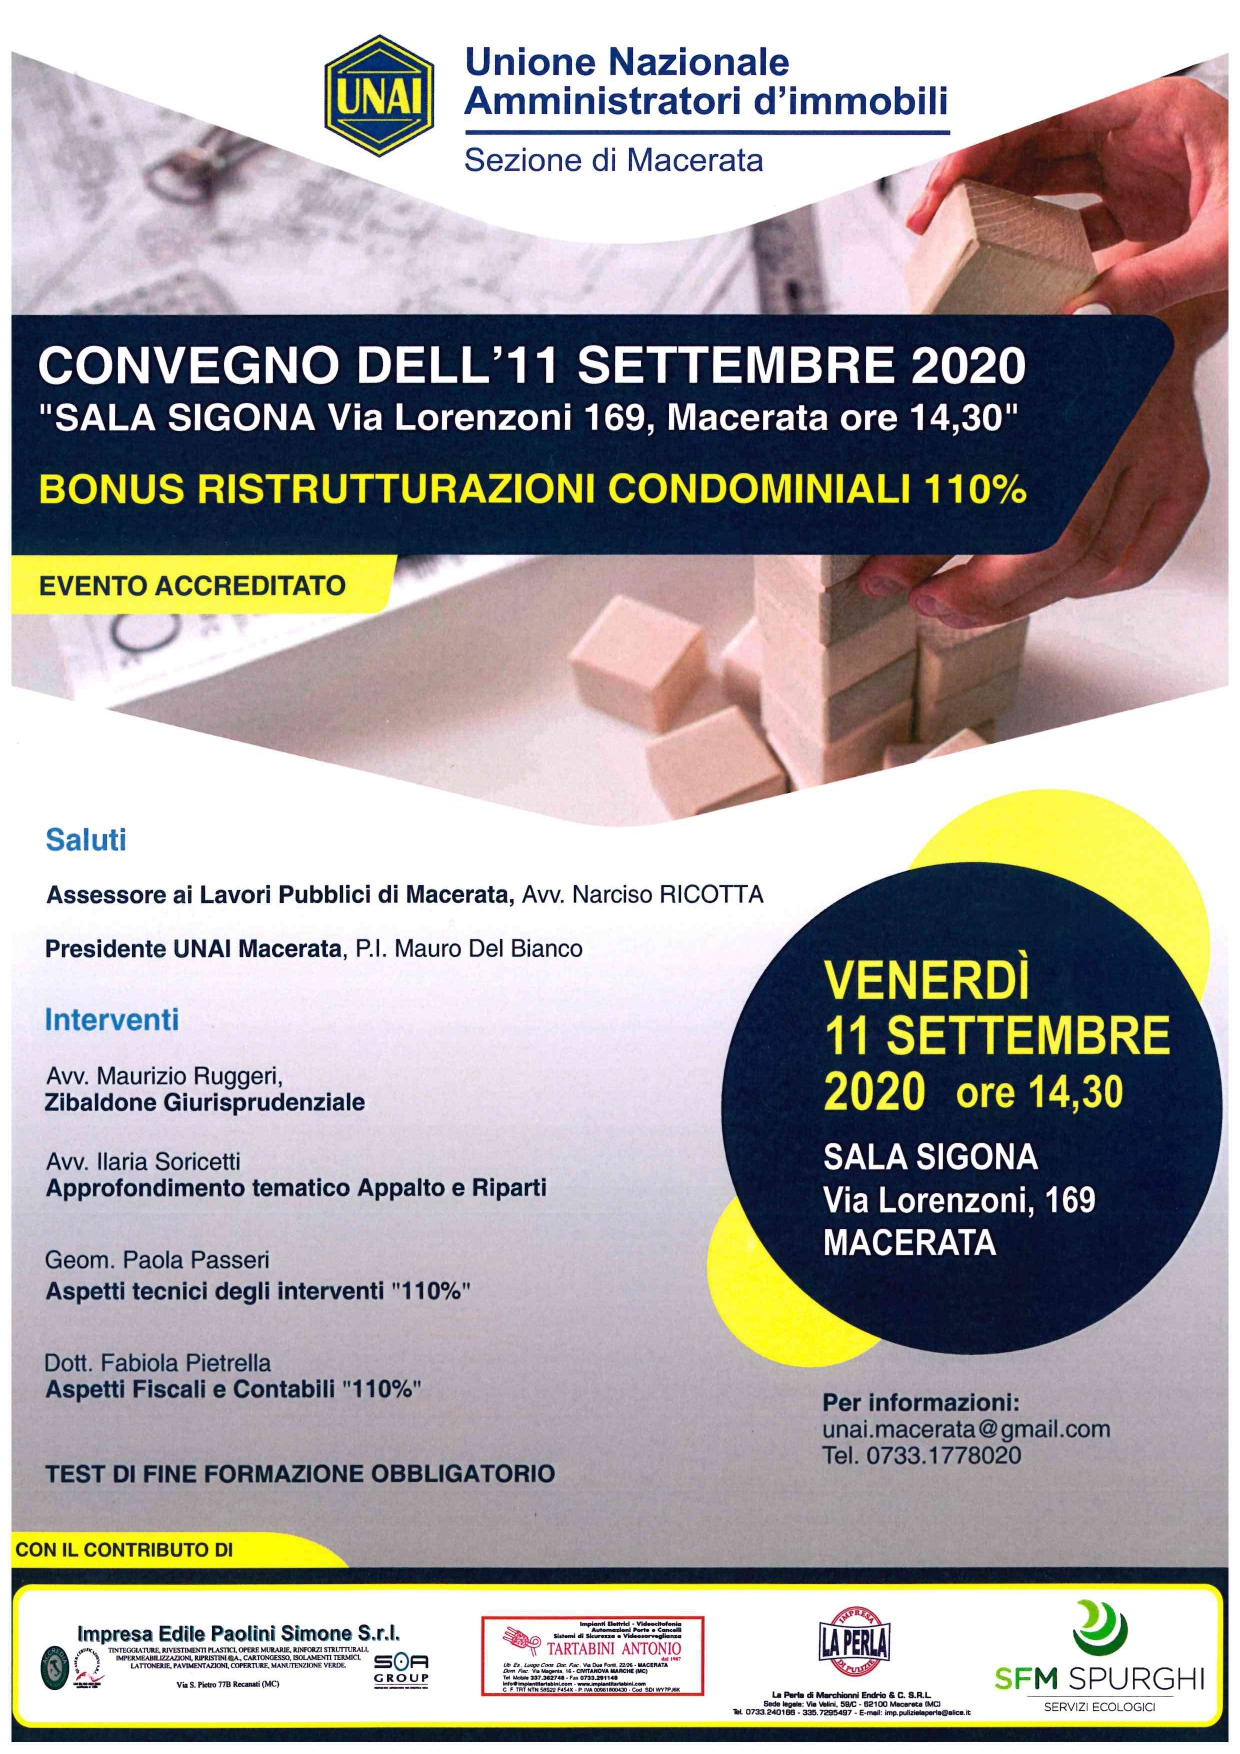 https://www.businessblog.it/wp-content/uploads/2020/09/bonus-ristrutturazioni-condominiali-110.jpg